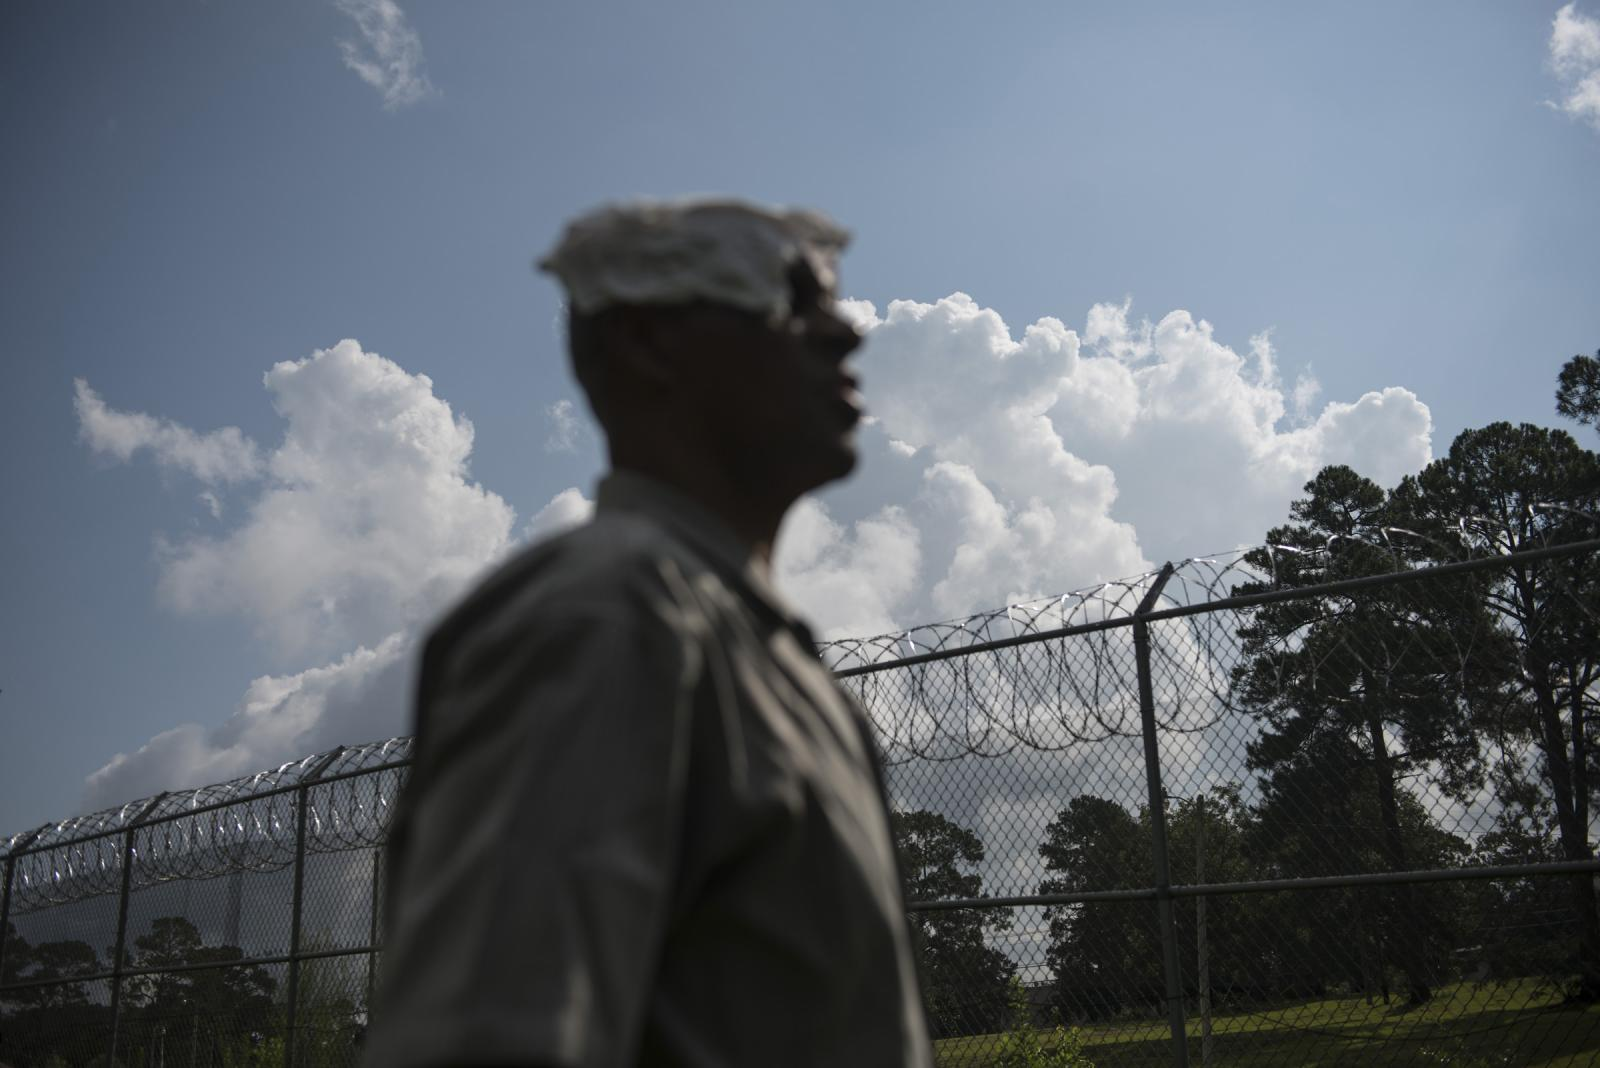 John Bonner, looks out over barbed wire fencing at what was once the White House, where he was brutally beaten while sentenced at Dozier. The institution opened in 1901 and was shut down in 2011 amid repeated scandals and reports of severe brutality and slave labor. Thousands of boys, most of them black, living in segregated conditions until 1968, passed through Dozier.. This year, graves on the site were being exhumed to determine whether several boys who had disappeared, were buried on the site. Survivors of the camp, including five black men, revisited the grounds and for the first time publicly told their stories.